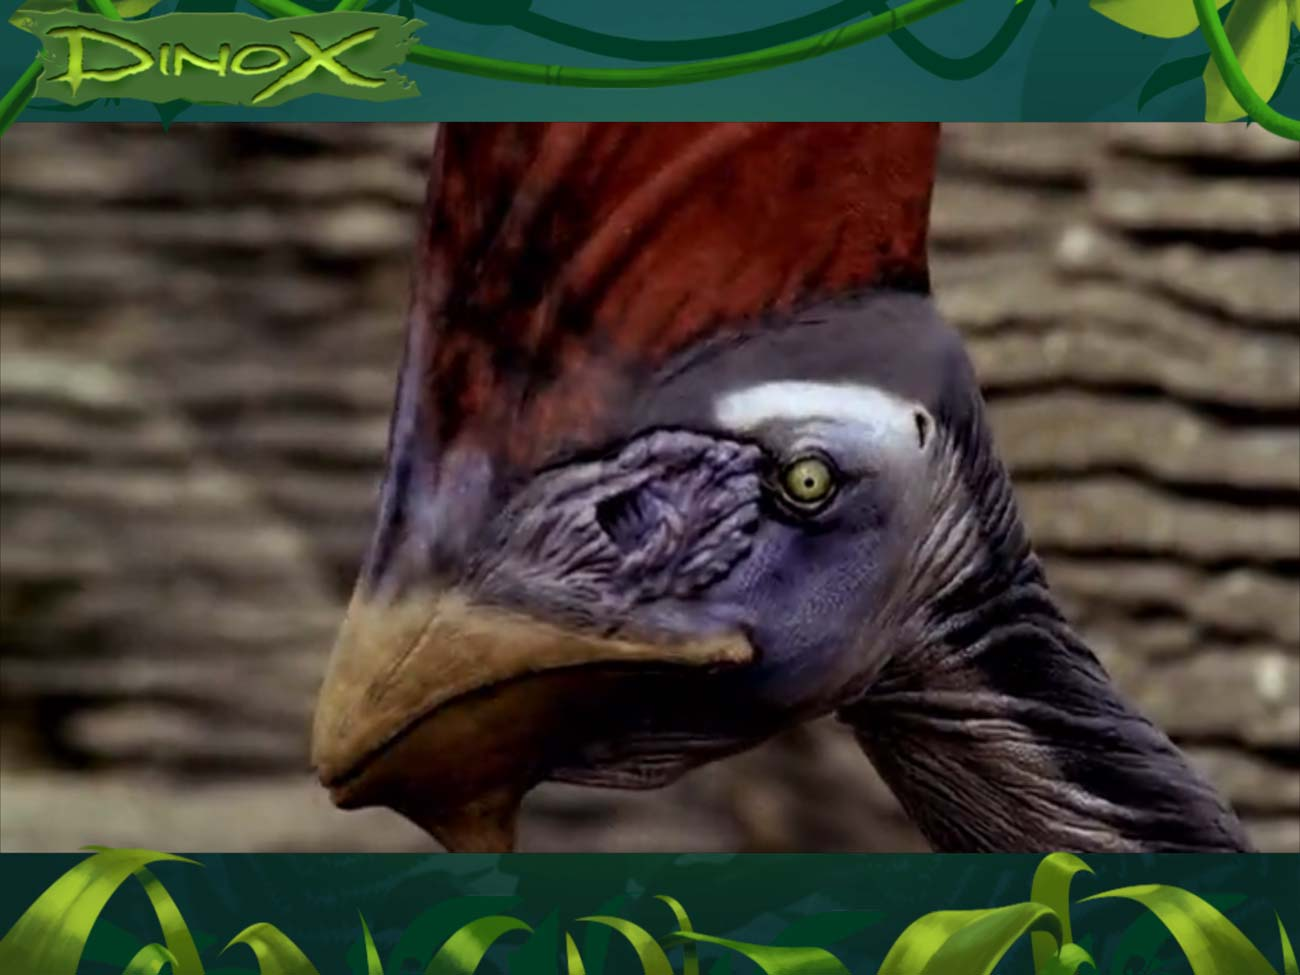 In Dinox, you watch a short video from Walking with Dinosaurs...